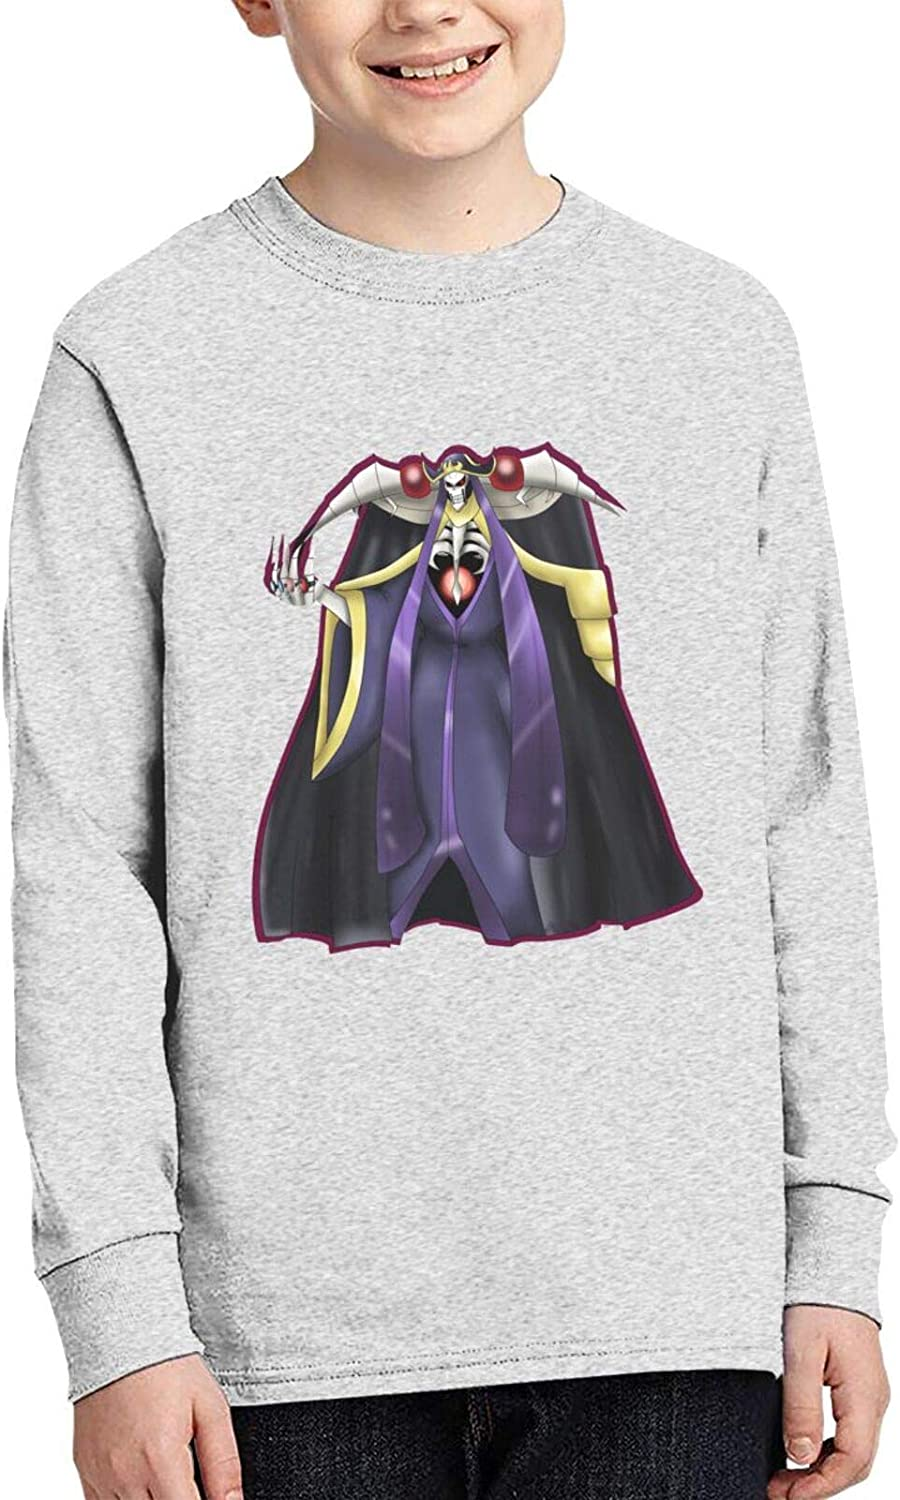 Teens Boy's Cotton 3D Print Funny Round Neck Long Sleeve T Shirts Anime Graphic Tees Shirt Top